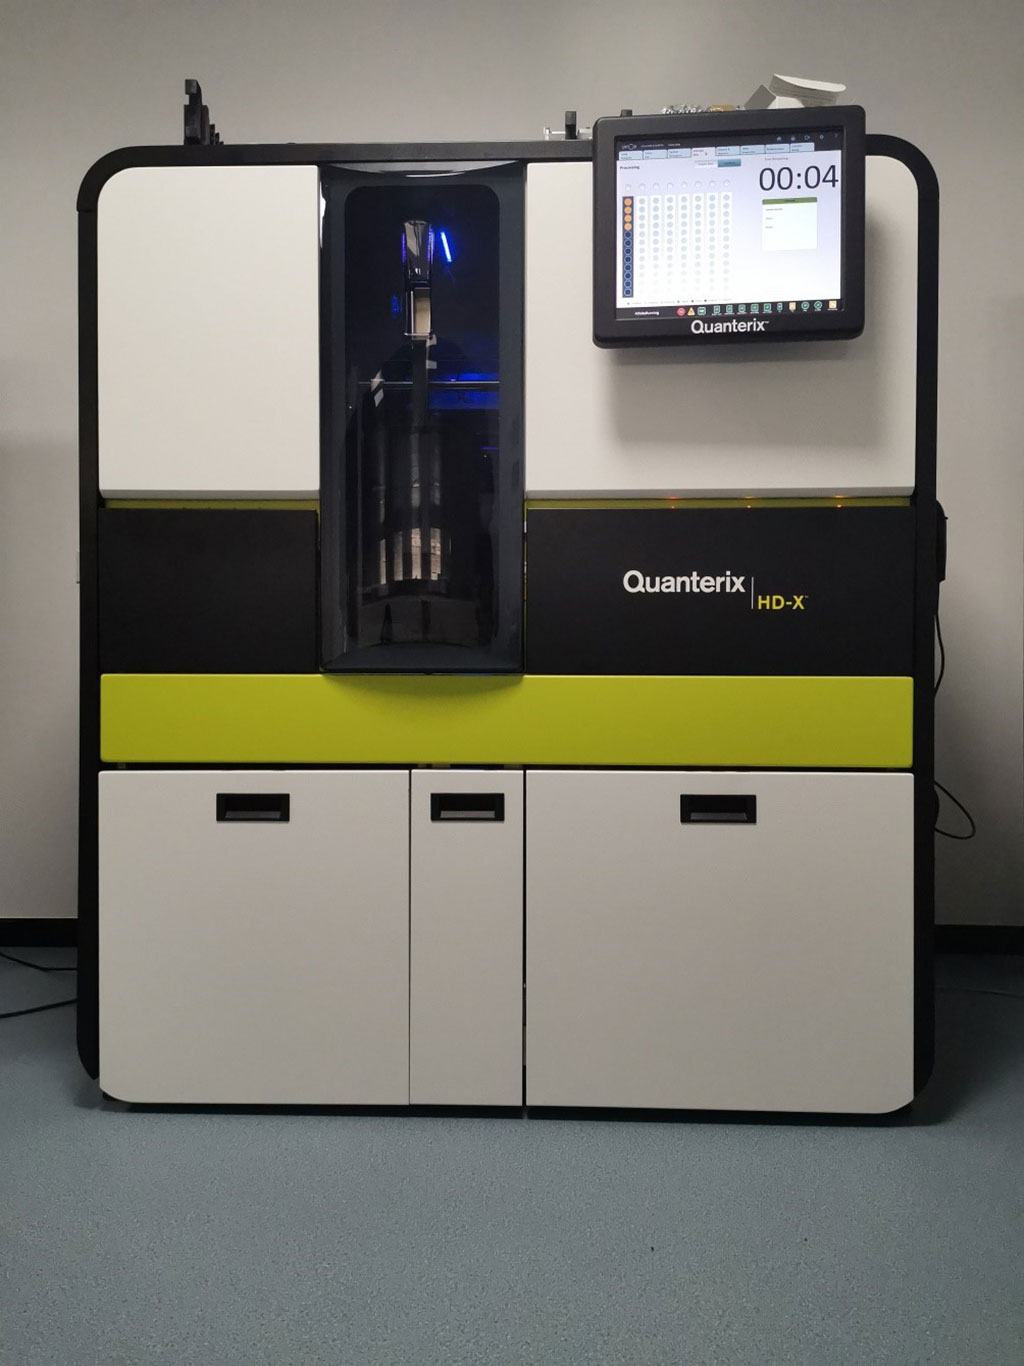 Image: The Simoa HD-X fully automated immunoassay platform with multiplexing and custom assay capability (Photo courtesy of Quanterix Corporation).